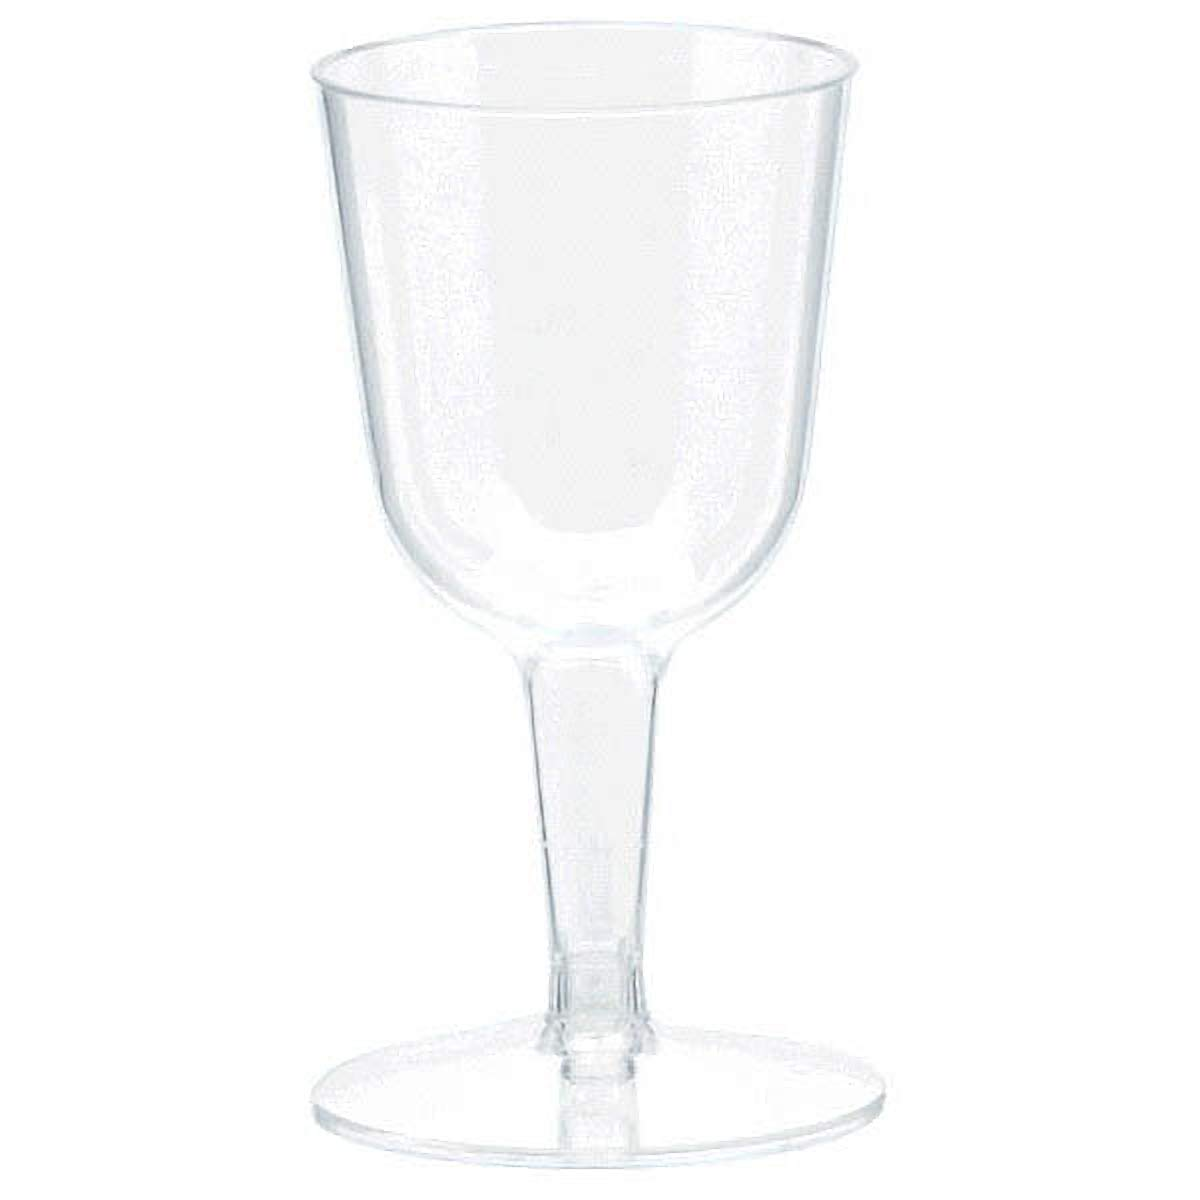 TradeMart Inc Amscan Clear Mini Wine Glasses 2.5 oz | 120 Ct 357806.86